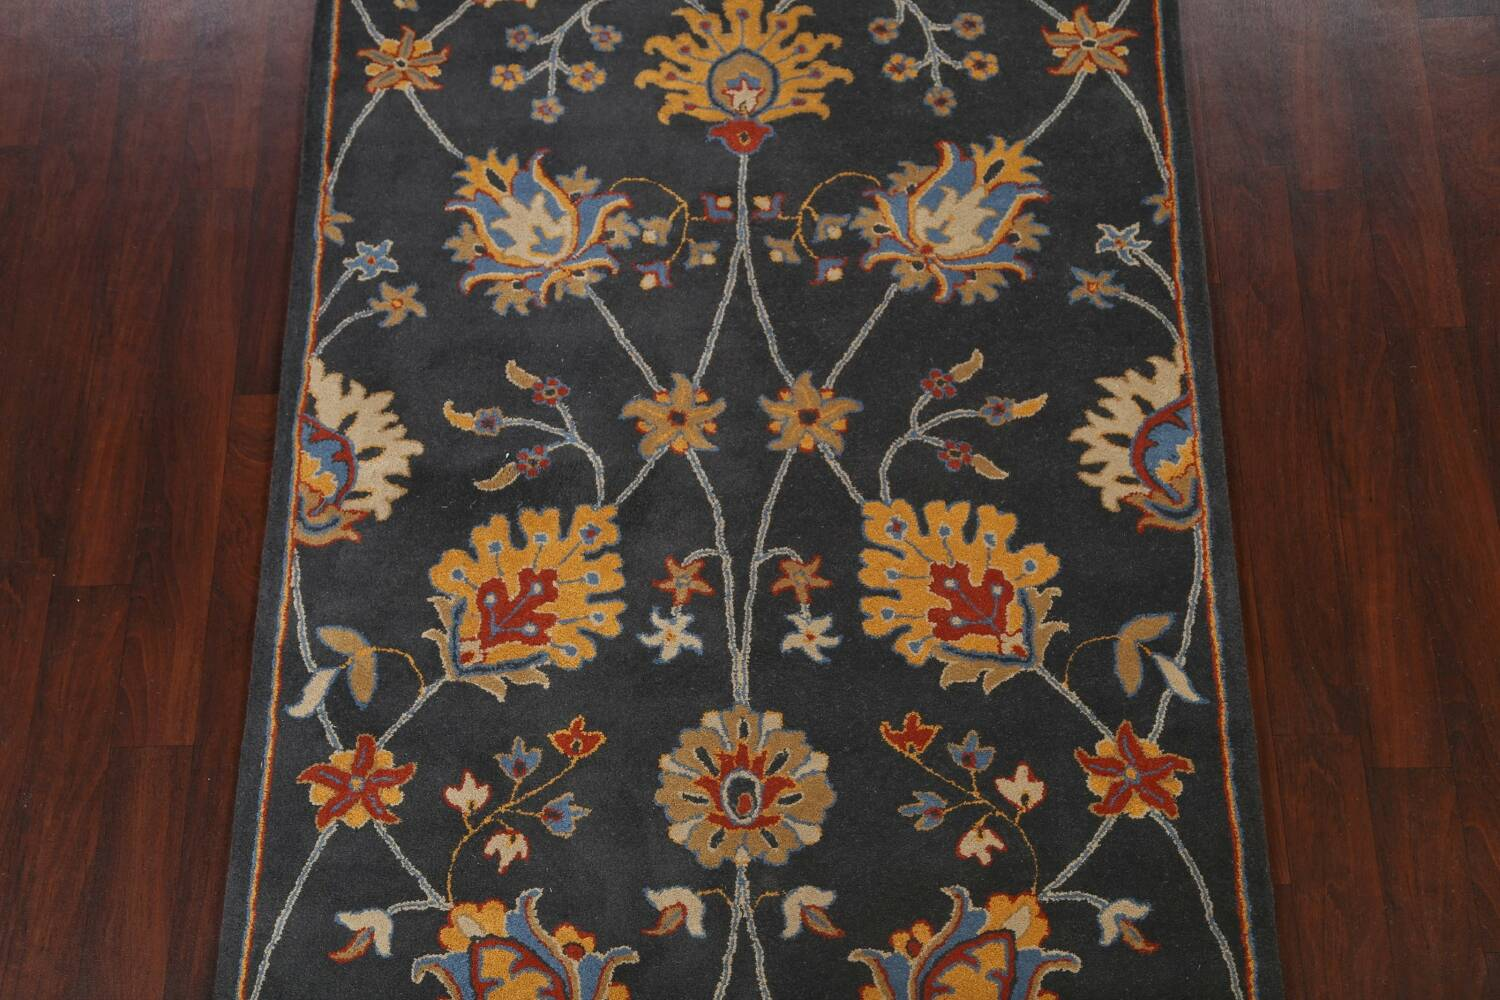 Hand-Tufted Floral Area Rug 5x8 image 3